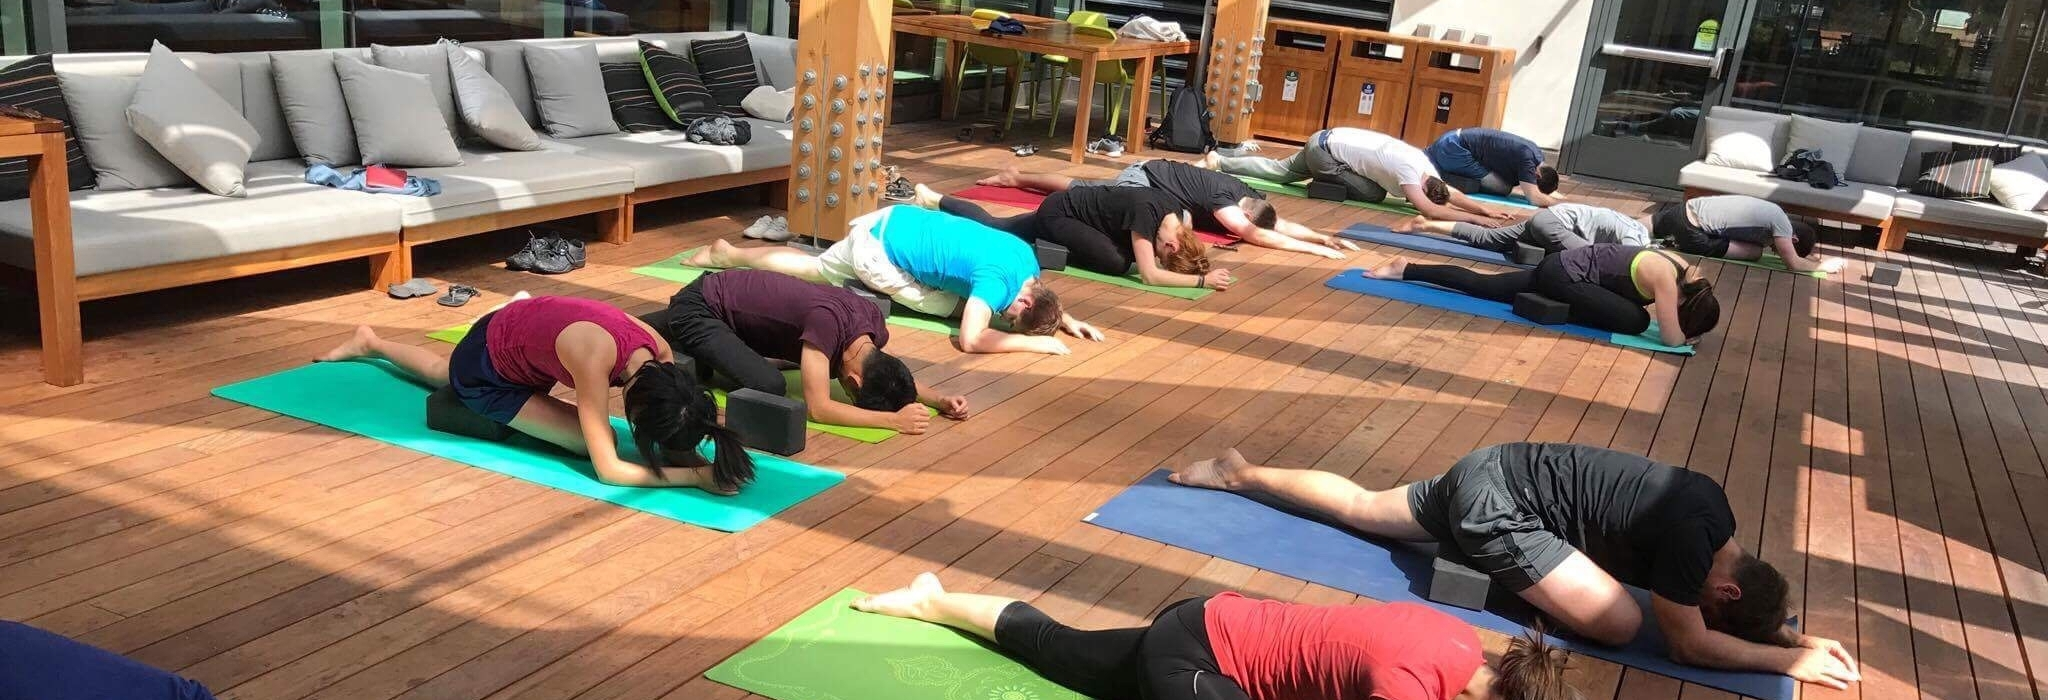 WHAT WE VALUE AT NW Corporate Yoga℠ -